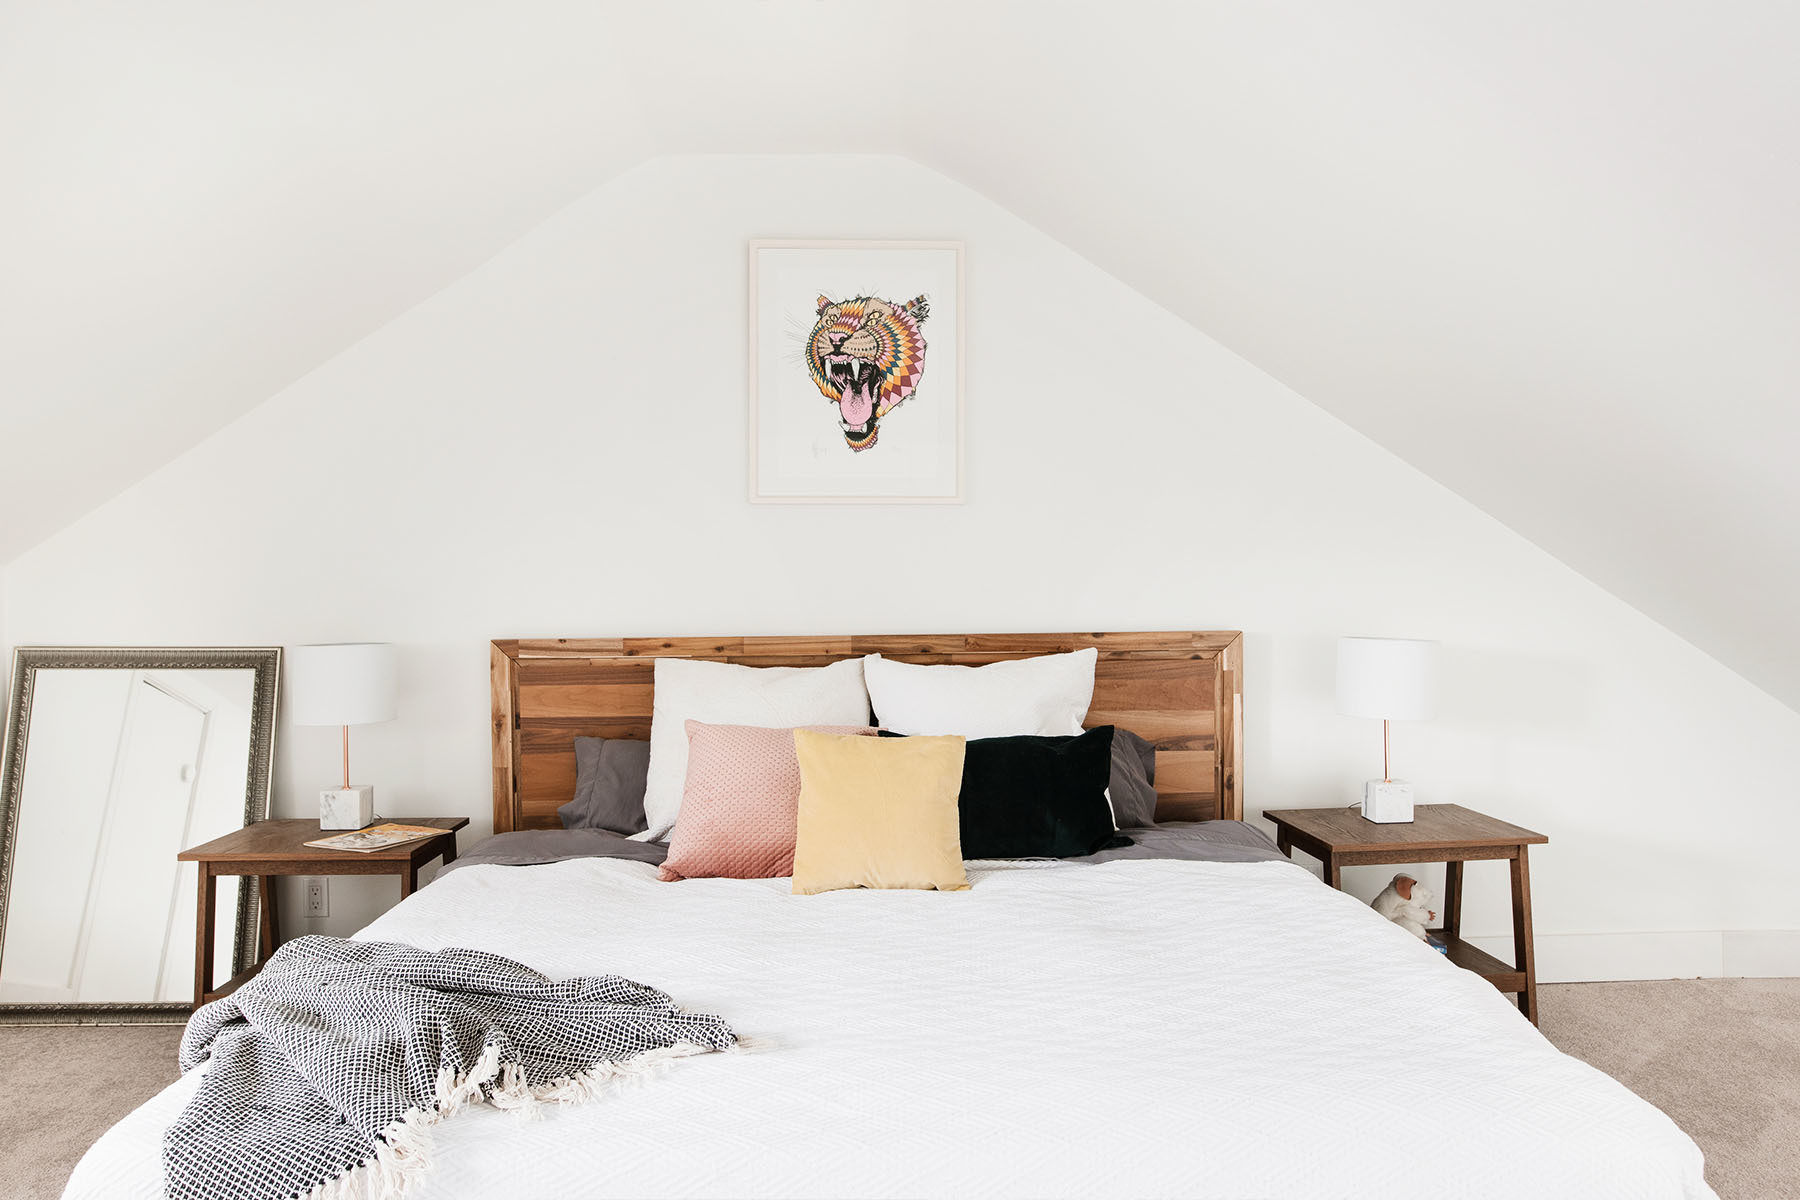 Inside Dineen's artfully cozy master bedroom. Structube Bed | H&M Home Pillows | Kelsey Brookes Artwork | IKEA Side Tables | Vintage Mirror.